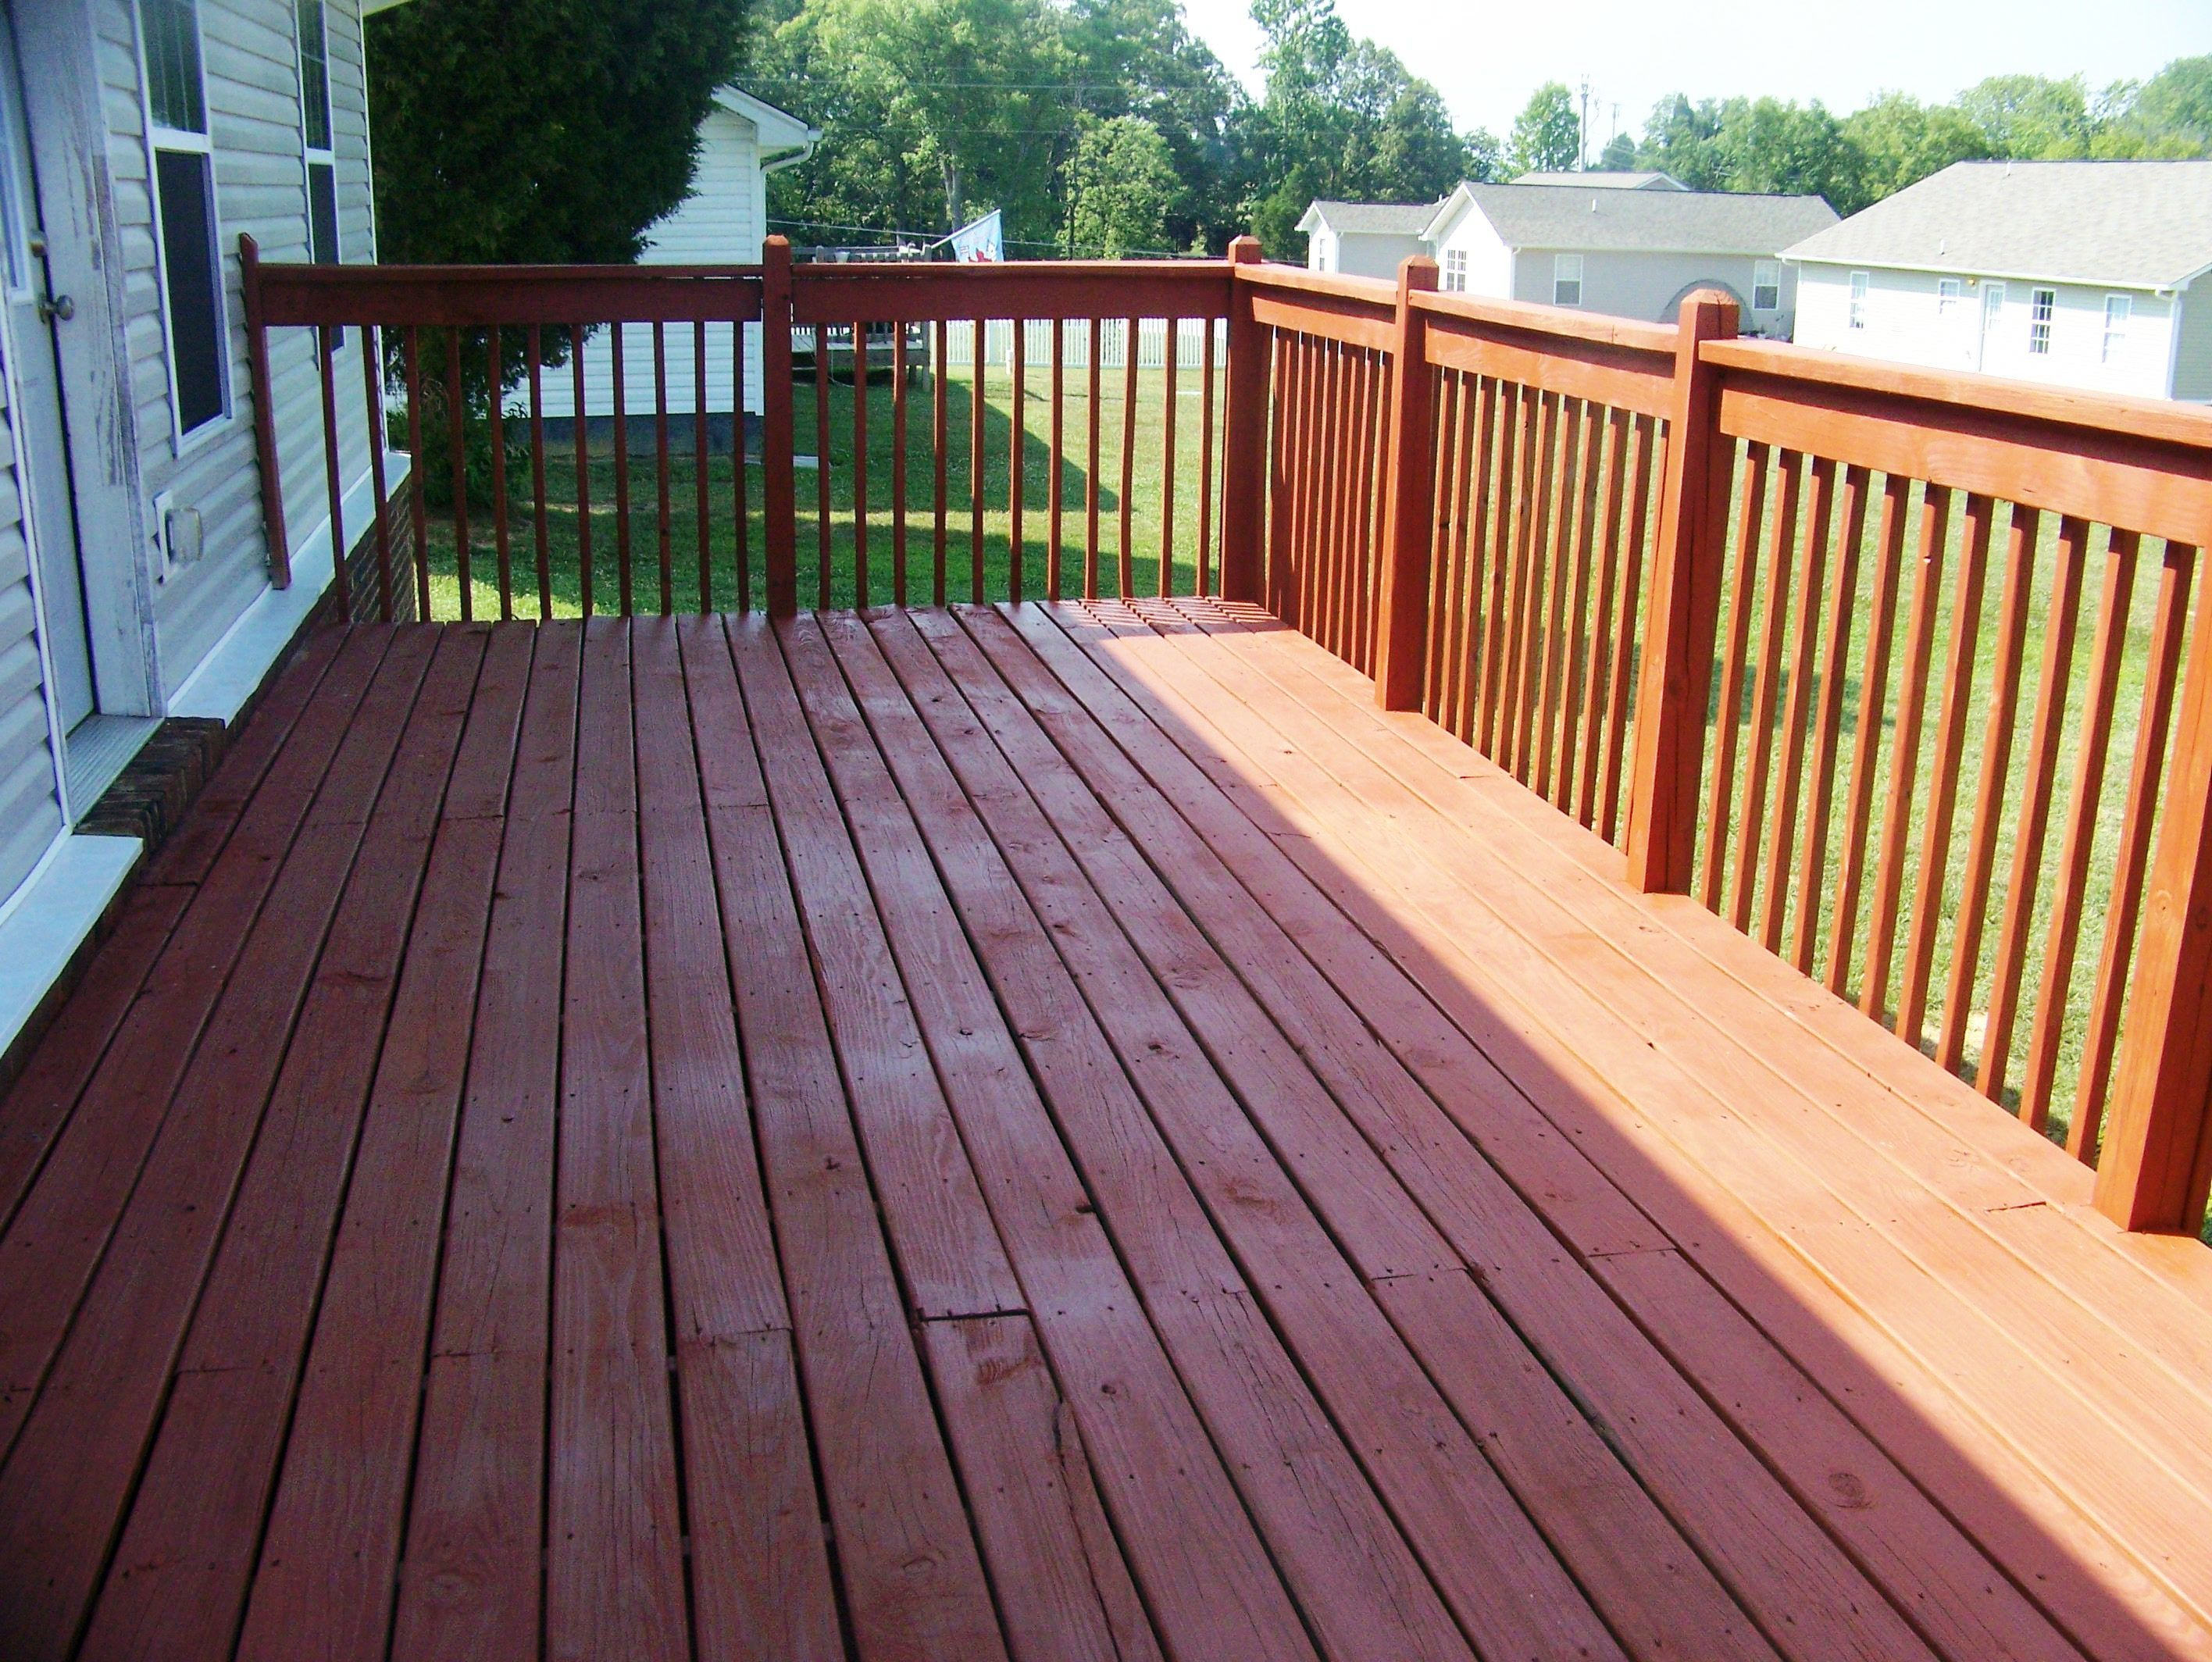 Behr deck stain color chartg 28322128 deck pinterest behr deck stain color chartg 28322128 nvjuhfo Image collections